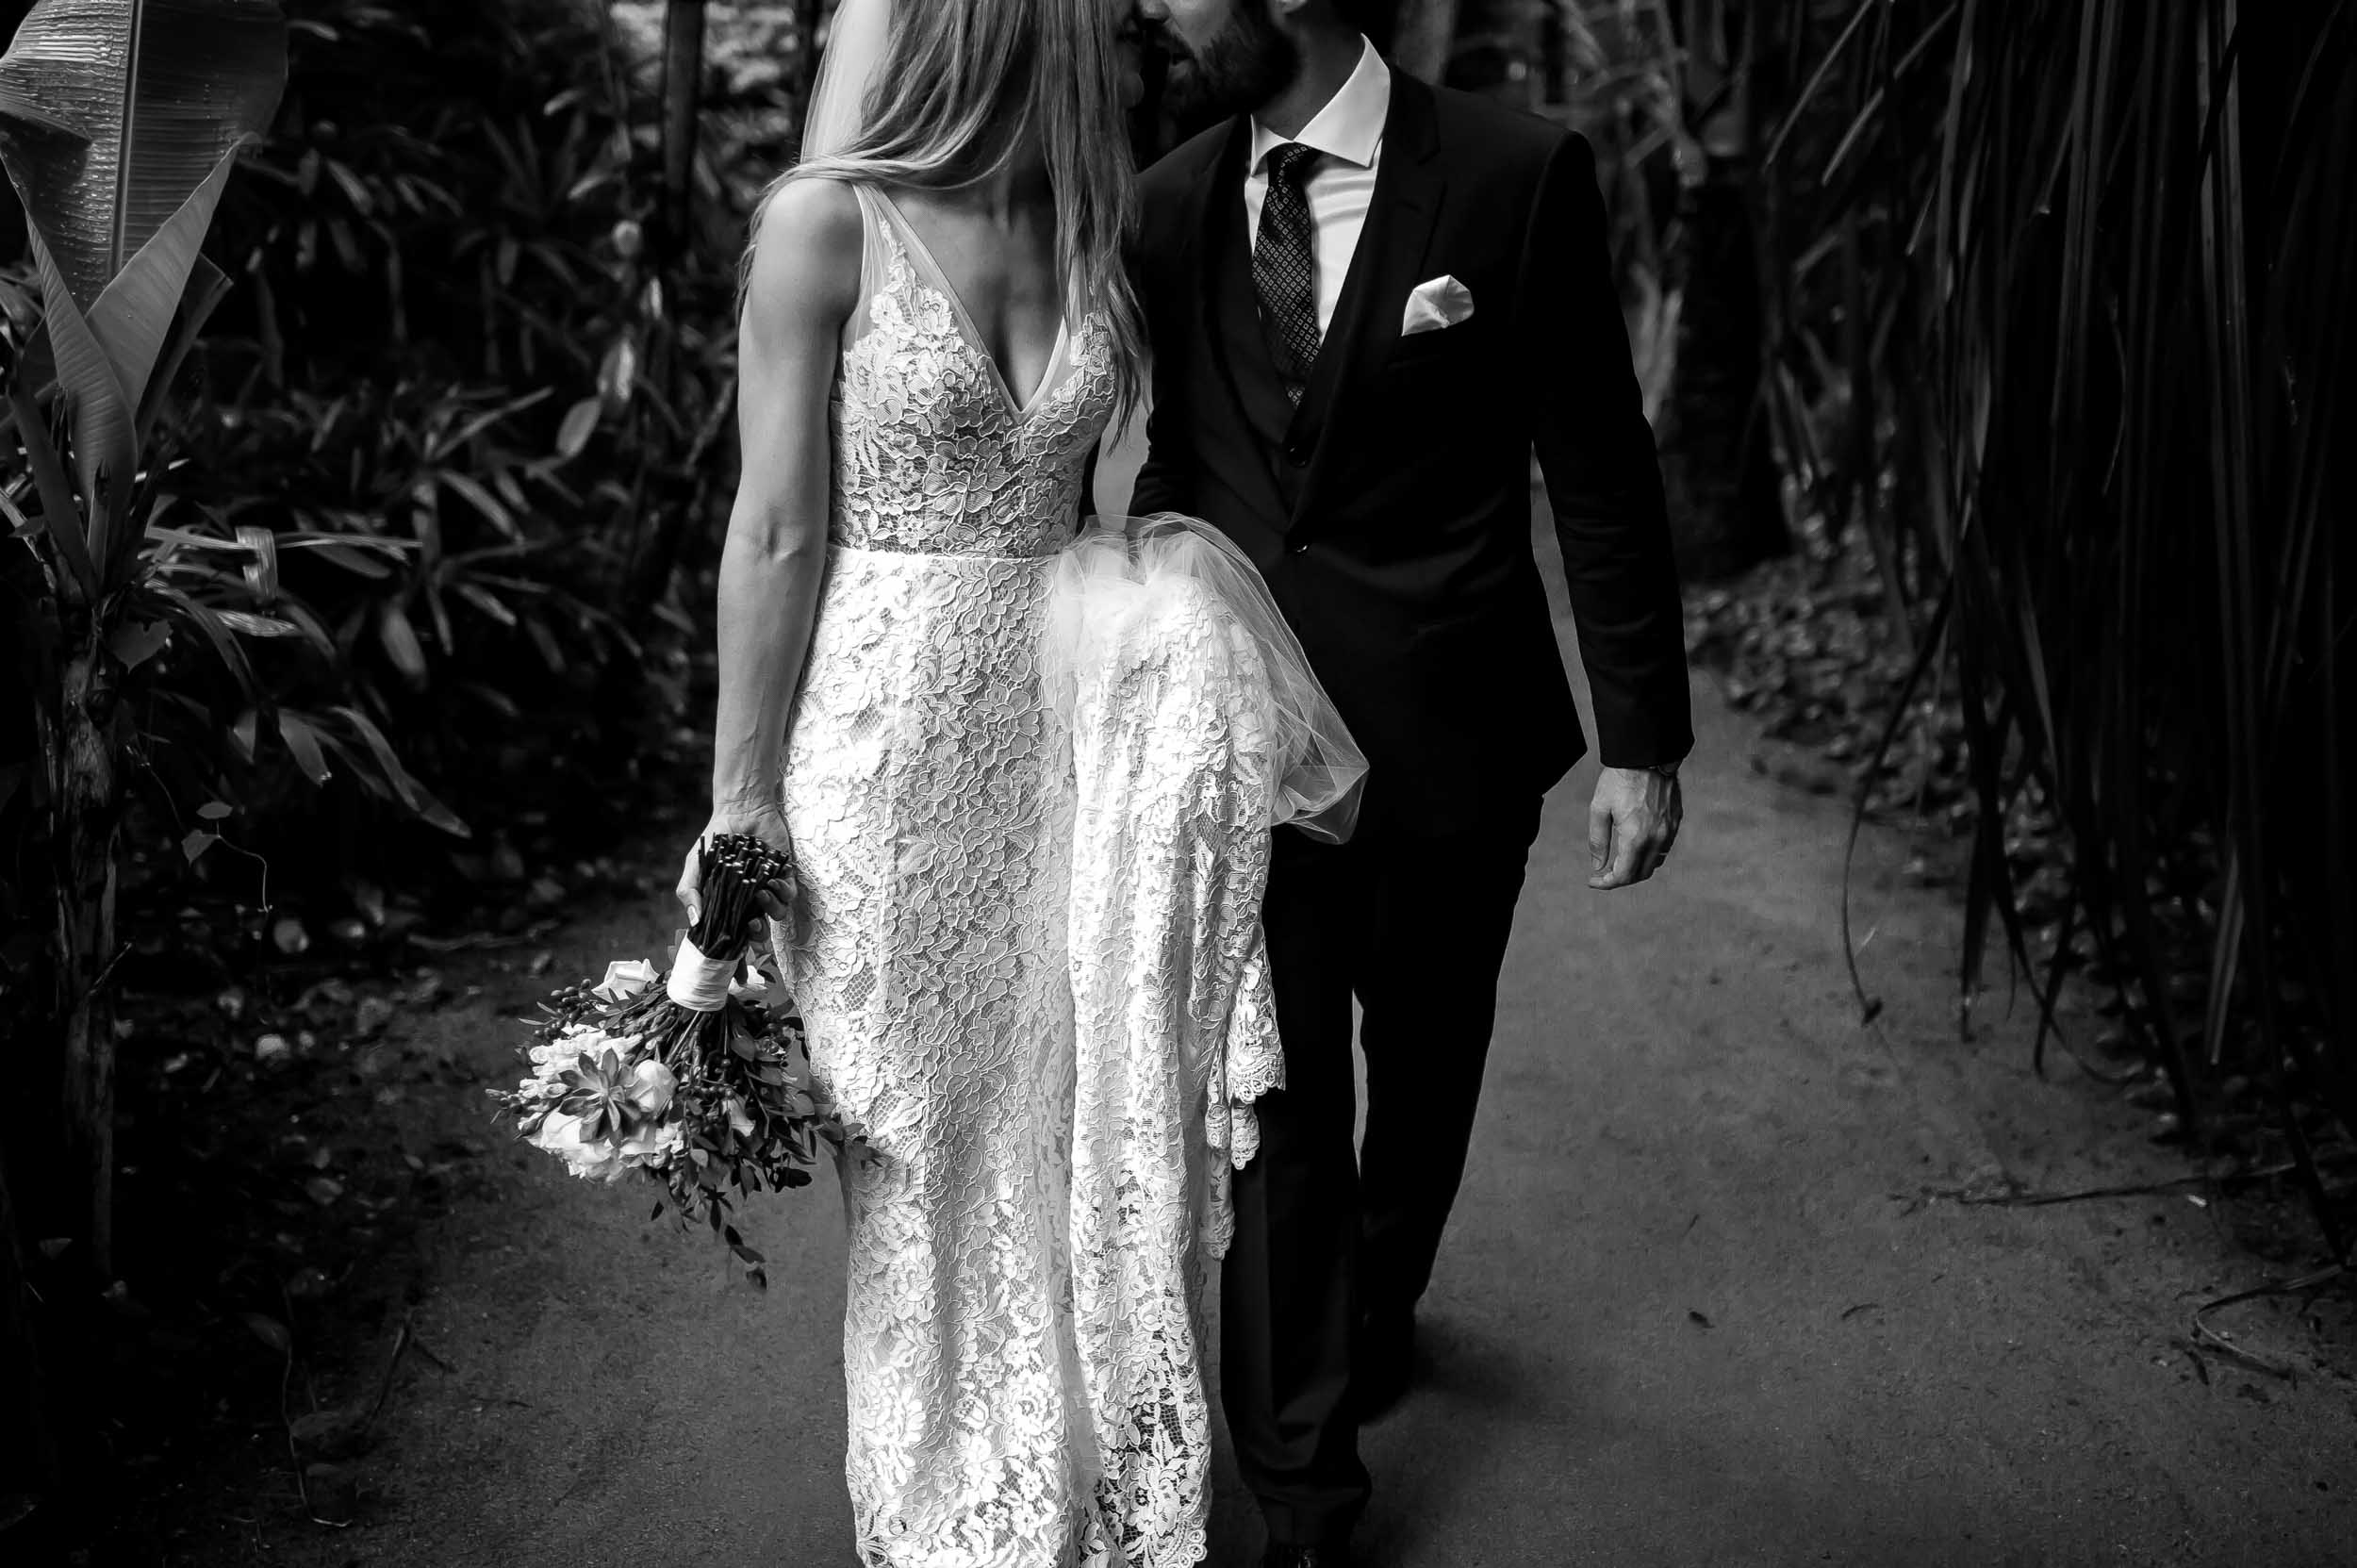 Laura & Brendan - Closest family and friends travelled to Bali to celebrate the love of Laura & Brendan.